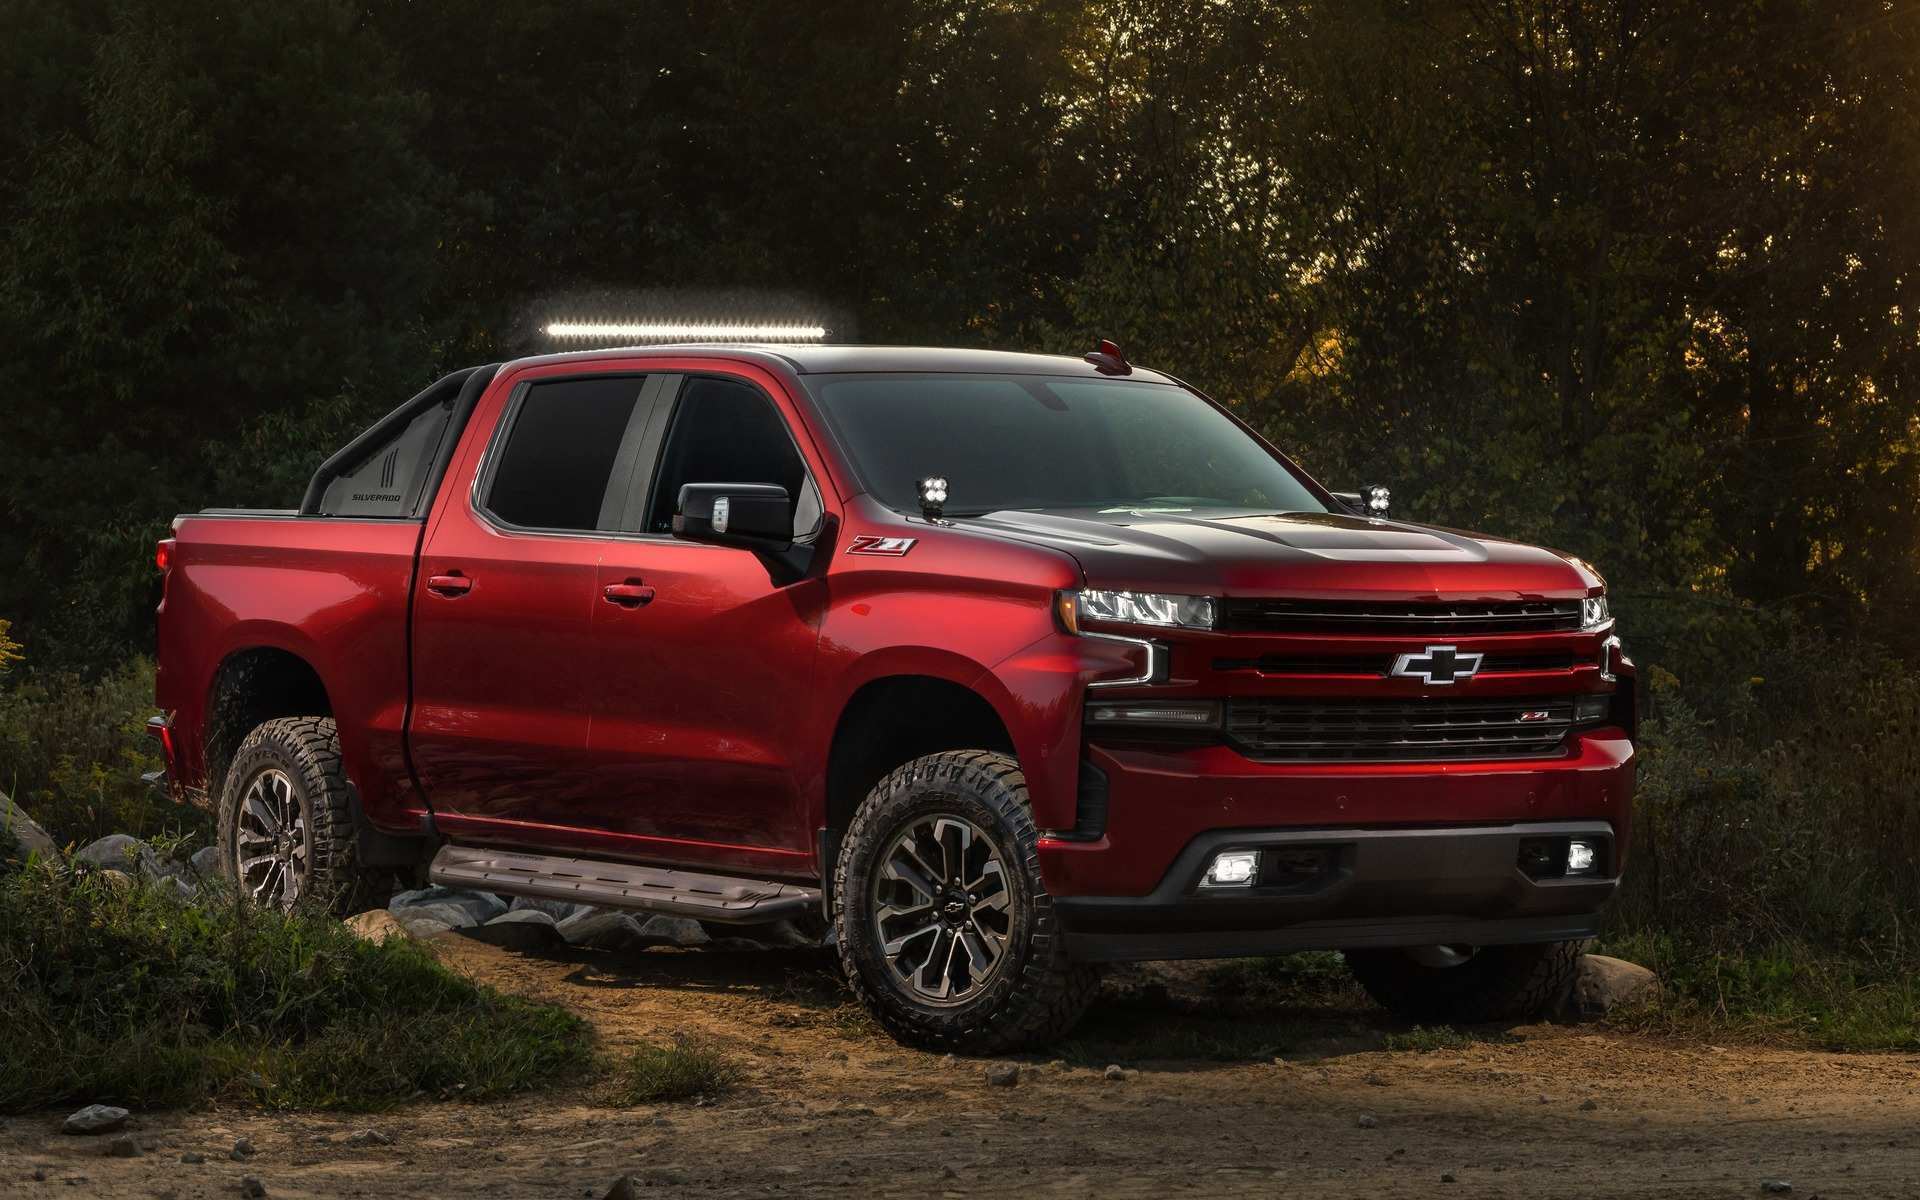 28 Gallery of New 2019 Chevrolet Silverado Work Truck Concept Redesign And Review Speed Test by New 2019 Chevrolet Silverado Work Truck Concept Redesign And Review